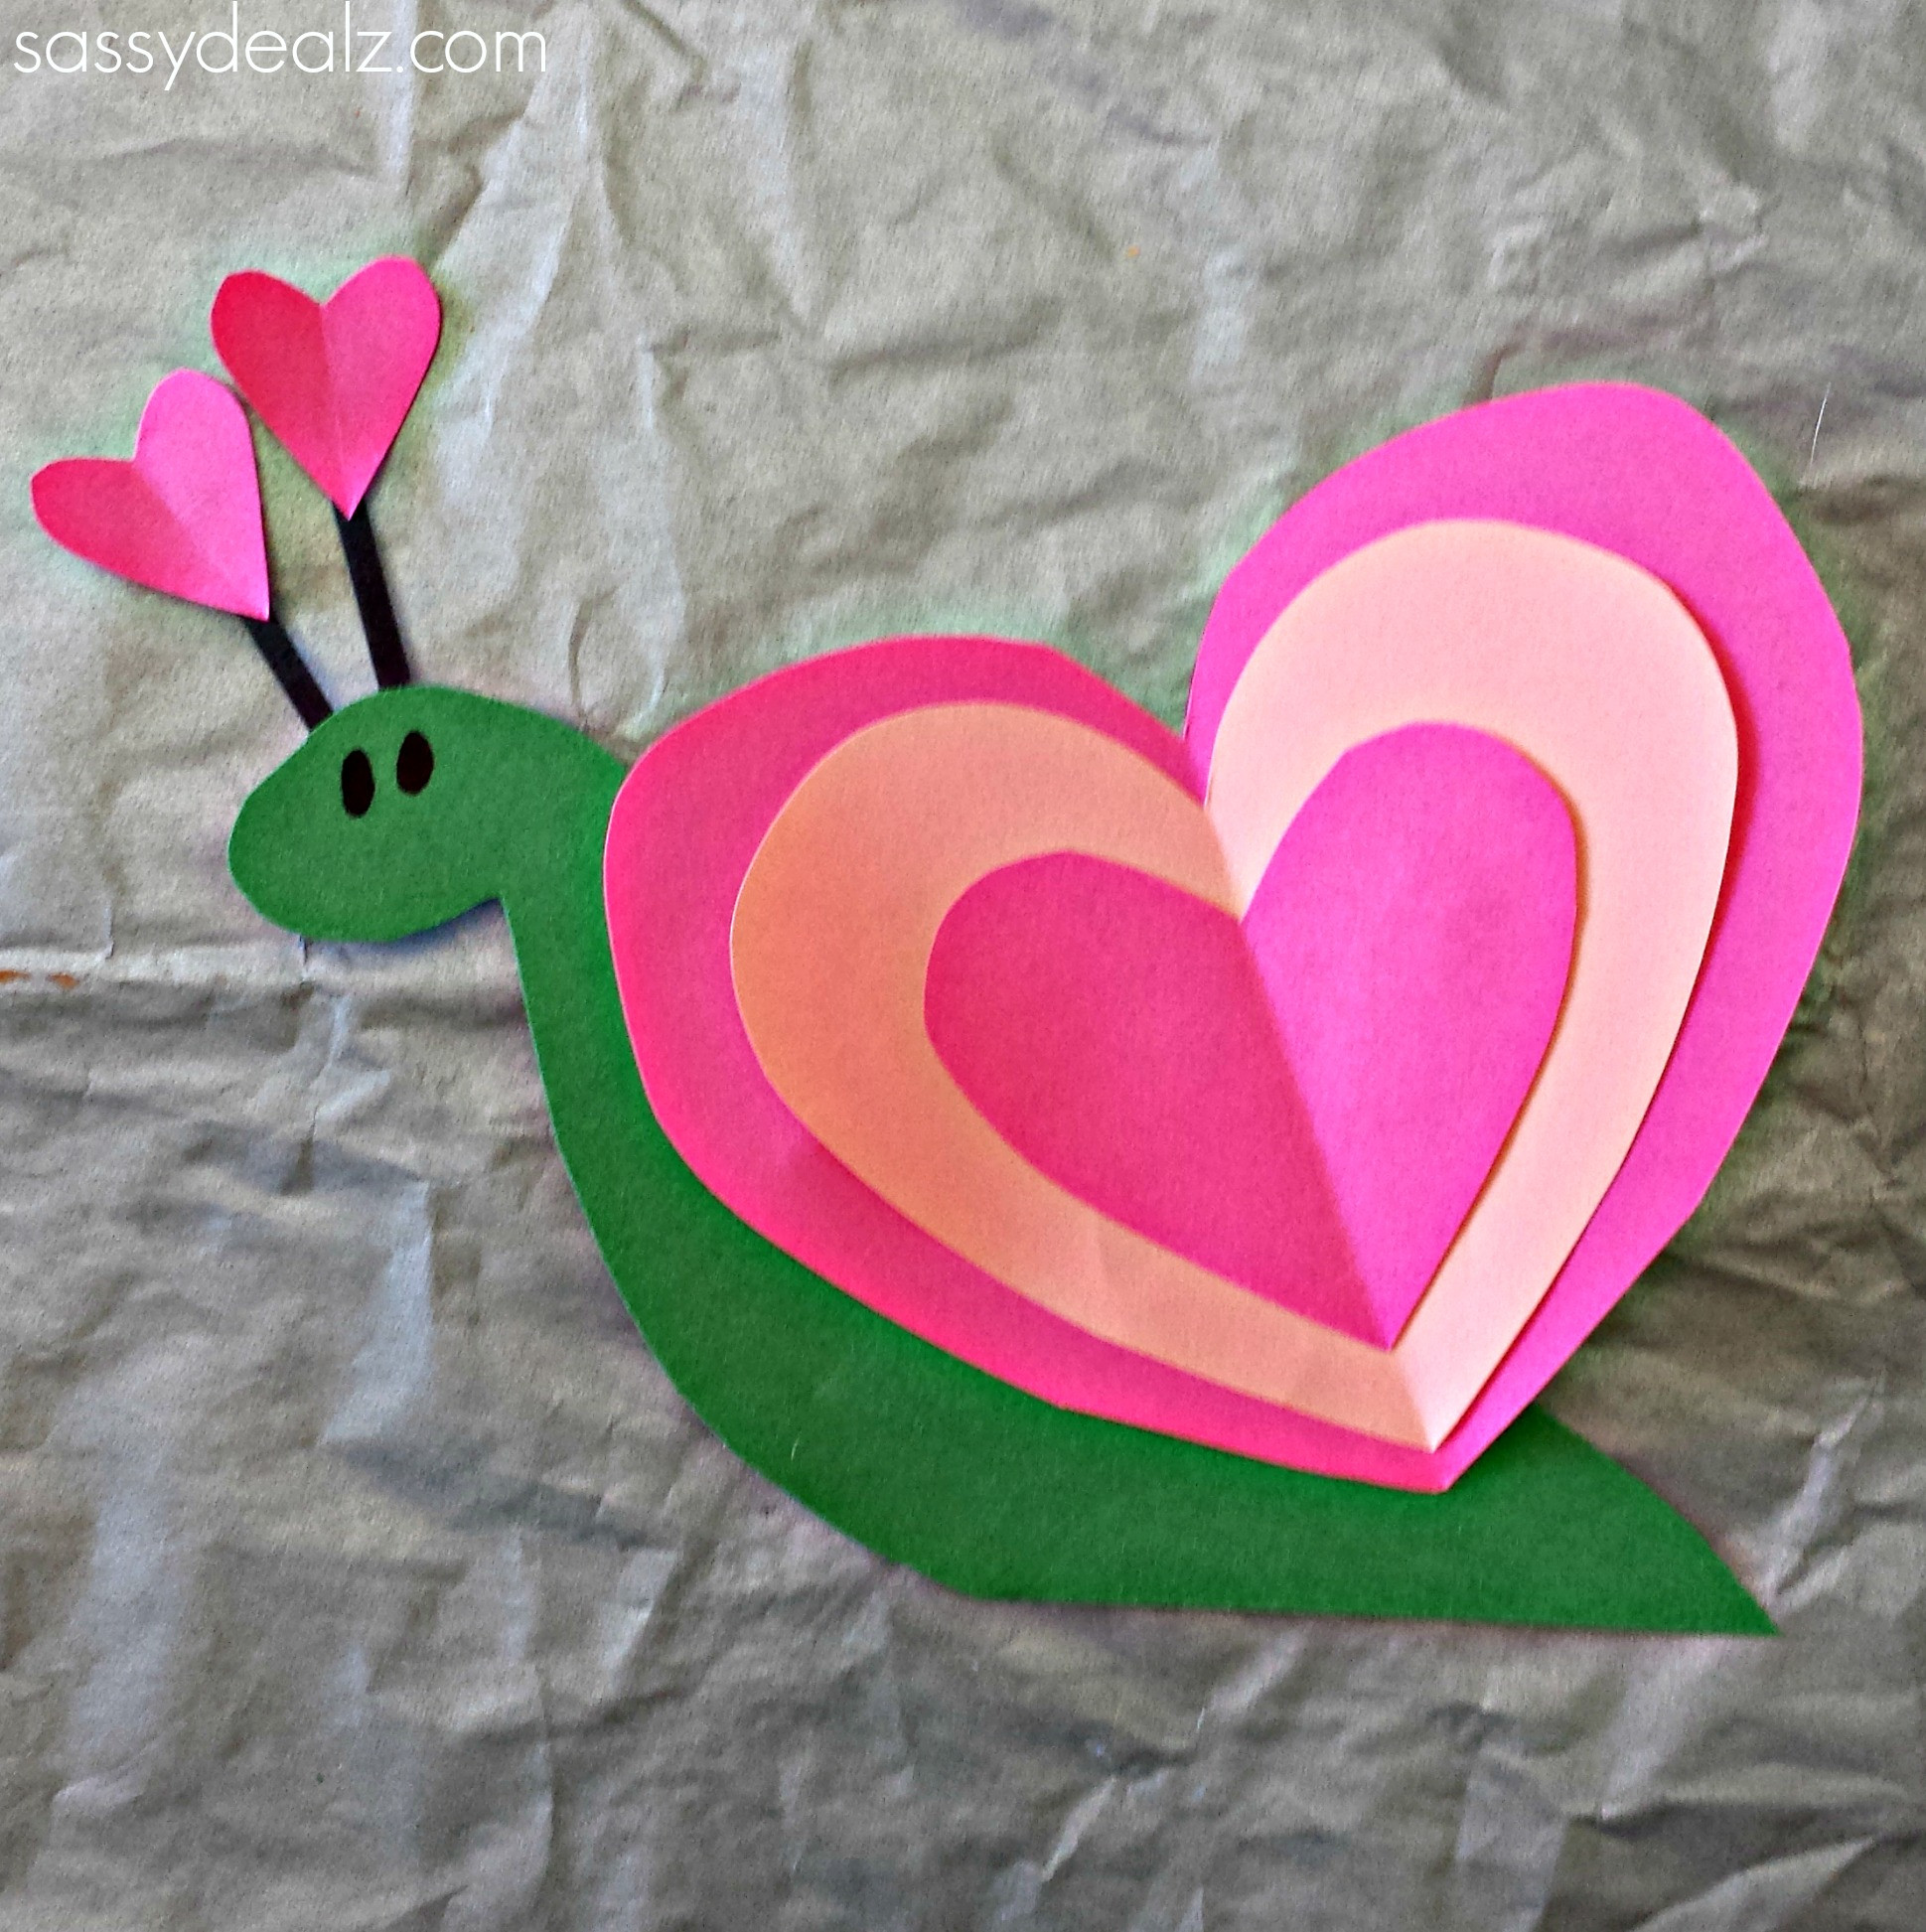 Best ideas about Valentines Day Craft Ideas For Kids . Save or Pin Heart Snail Craft For Kids Valentine Art Project Now.